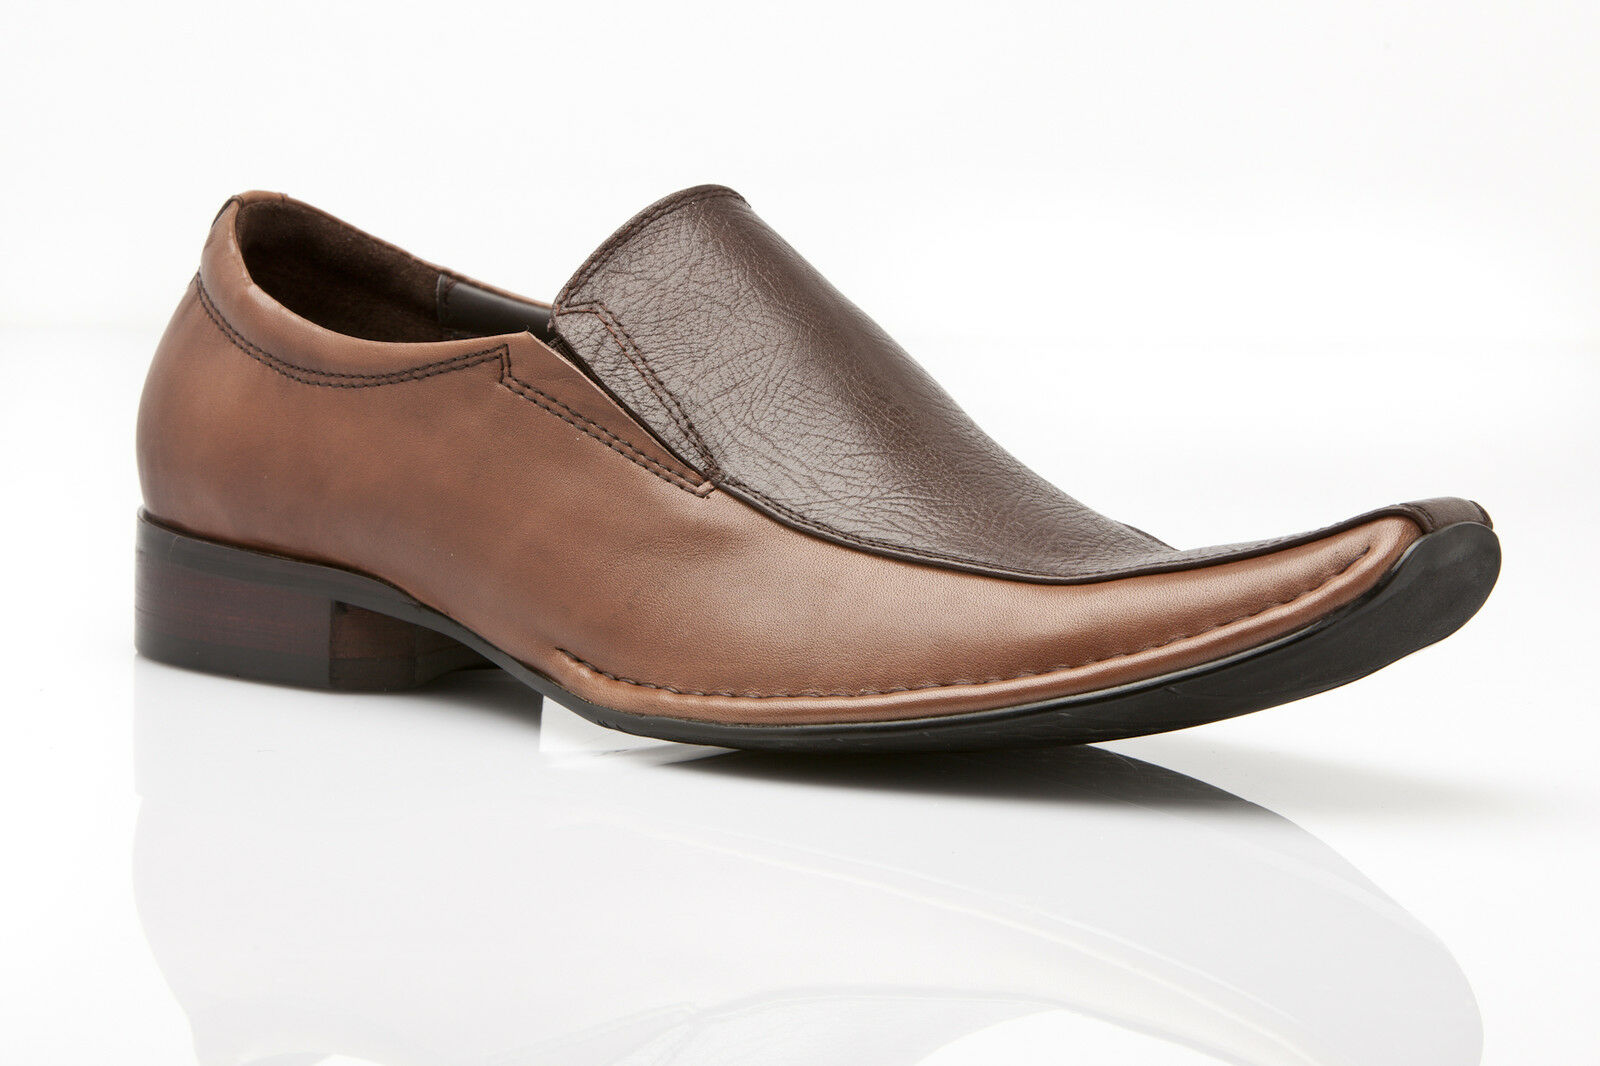 MENS BROWN  DRESS COFFEE LEATHER SLIP ON FORMAL CASUAL SHOES WEDDING - LAWRENCE